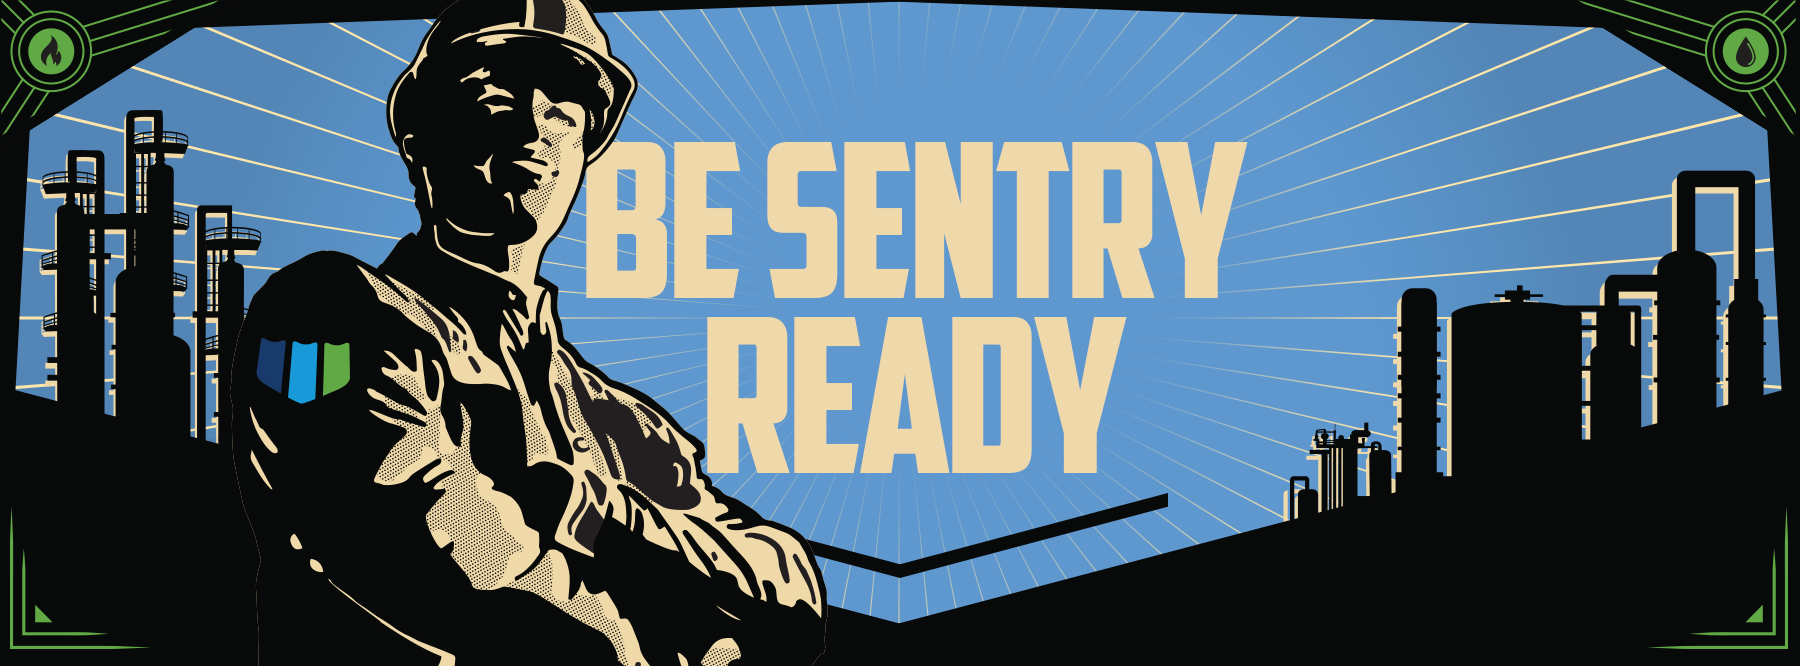 Be Sentry Ready Header-nosmall